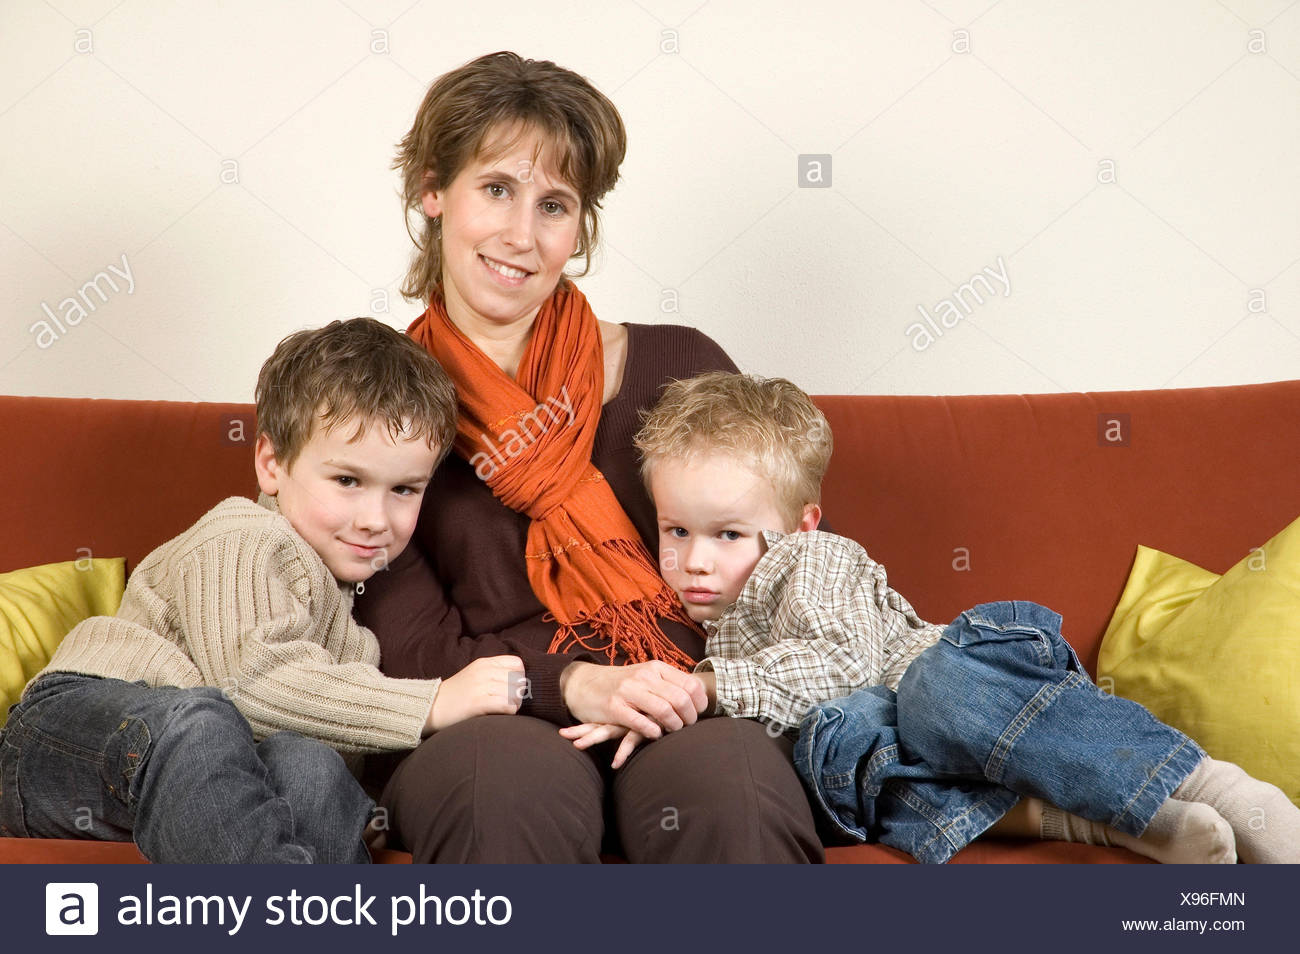 Mother And Two Sons 3 - Stock Image